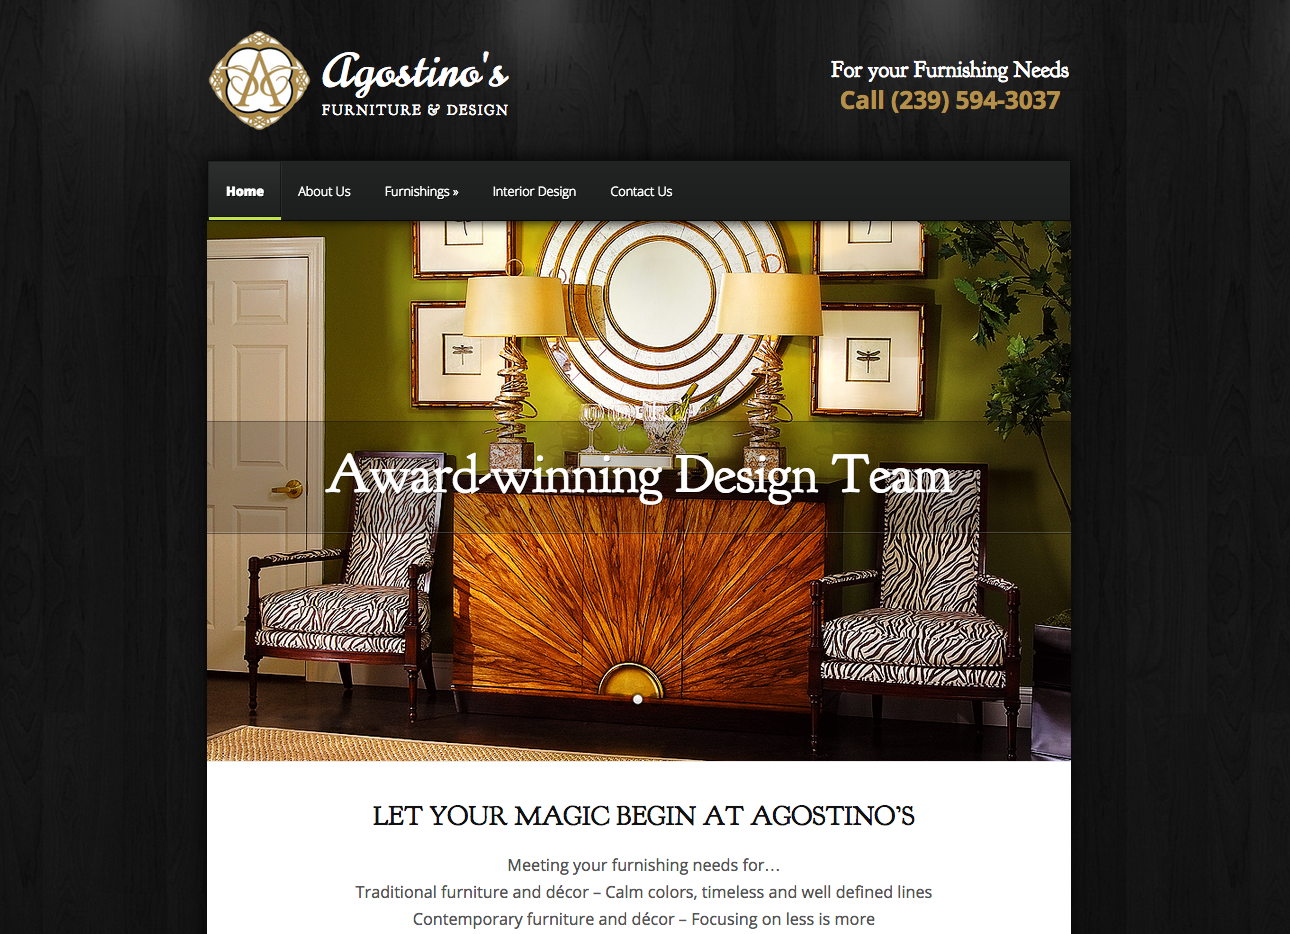 Agostino's Furniture and Design